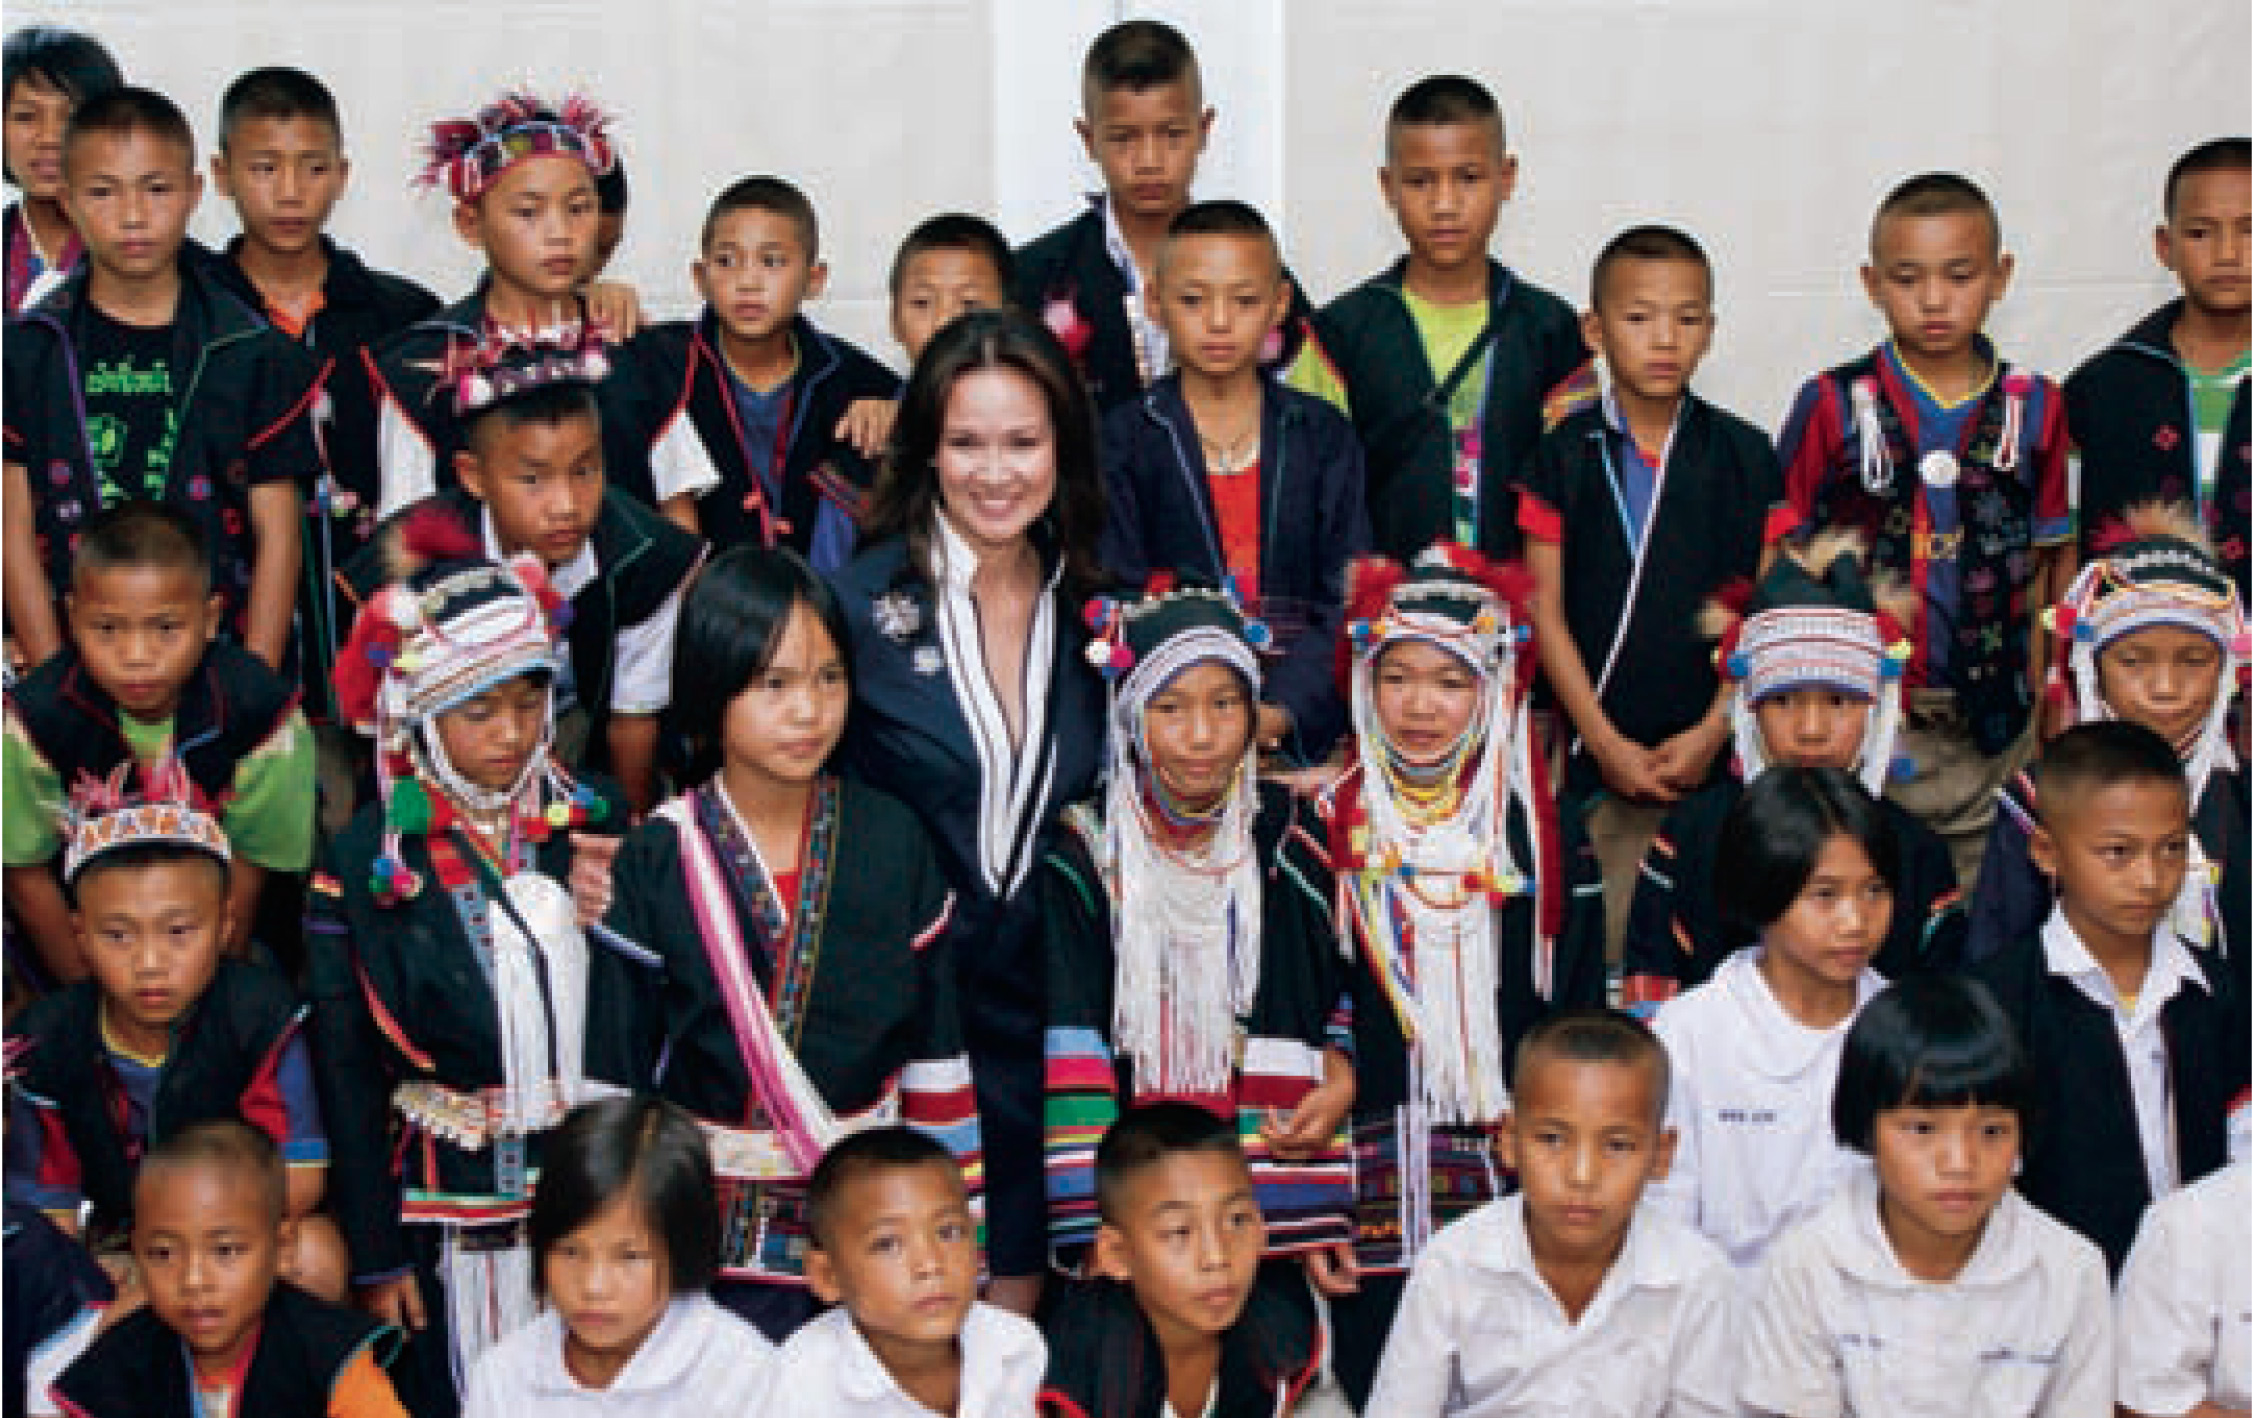 08/30/10 - Angels Wings Foundation Returns to 87th Thai Border Police's School in Chiang Rai